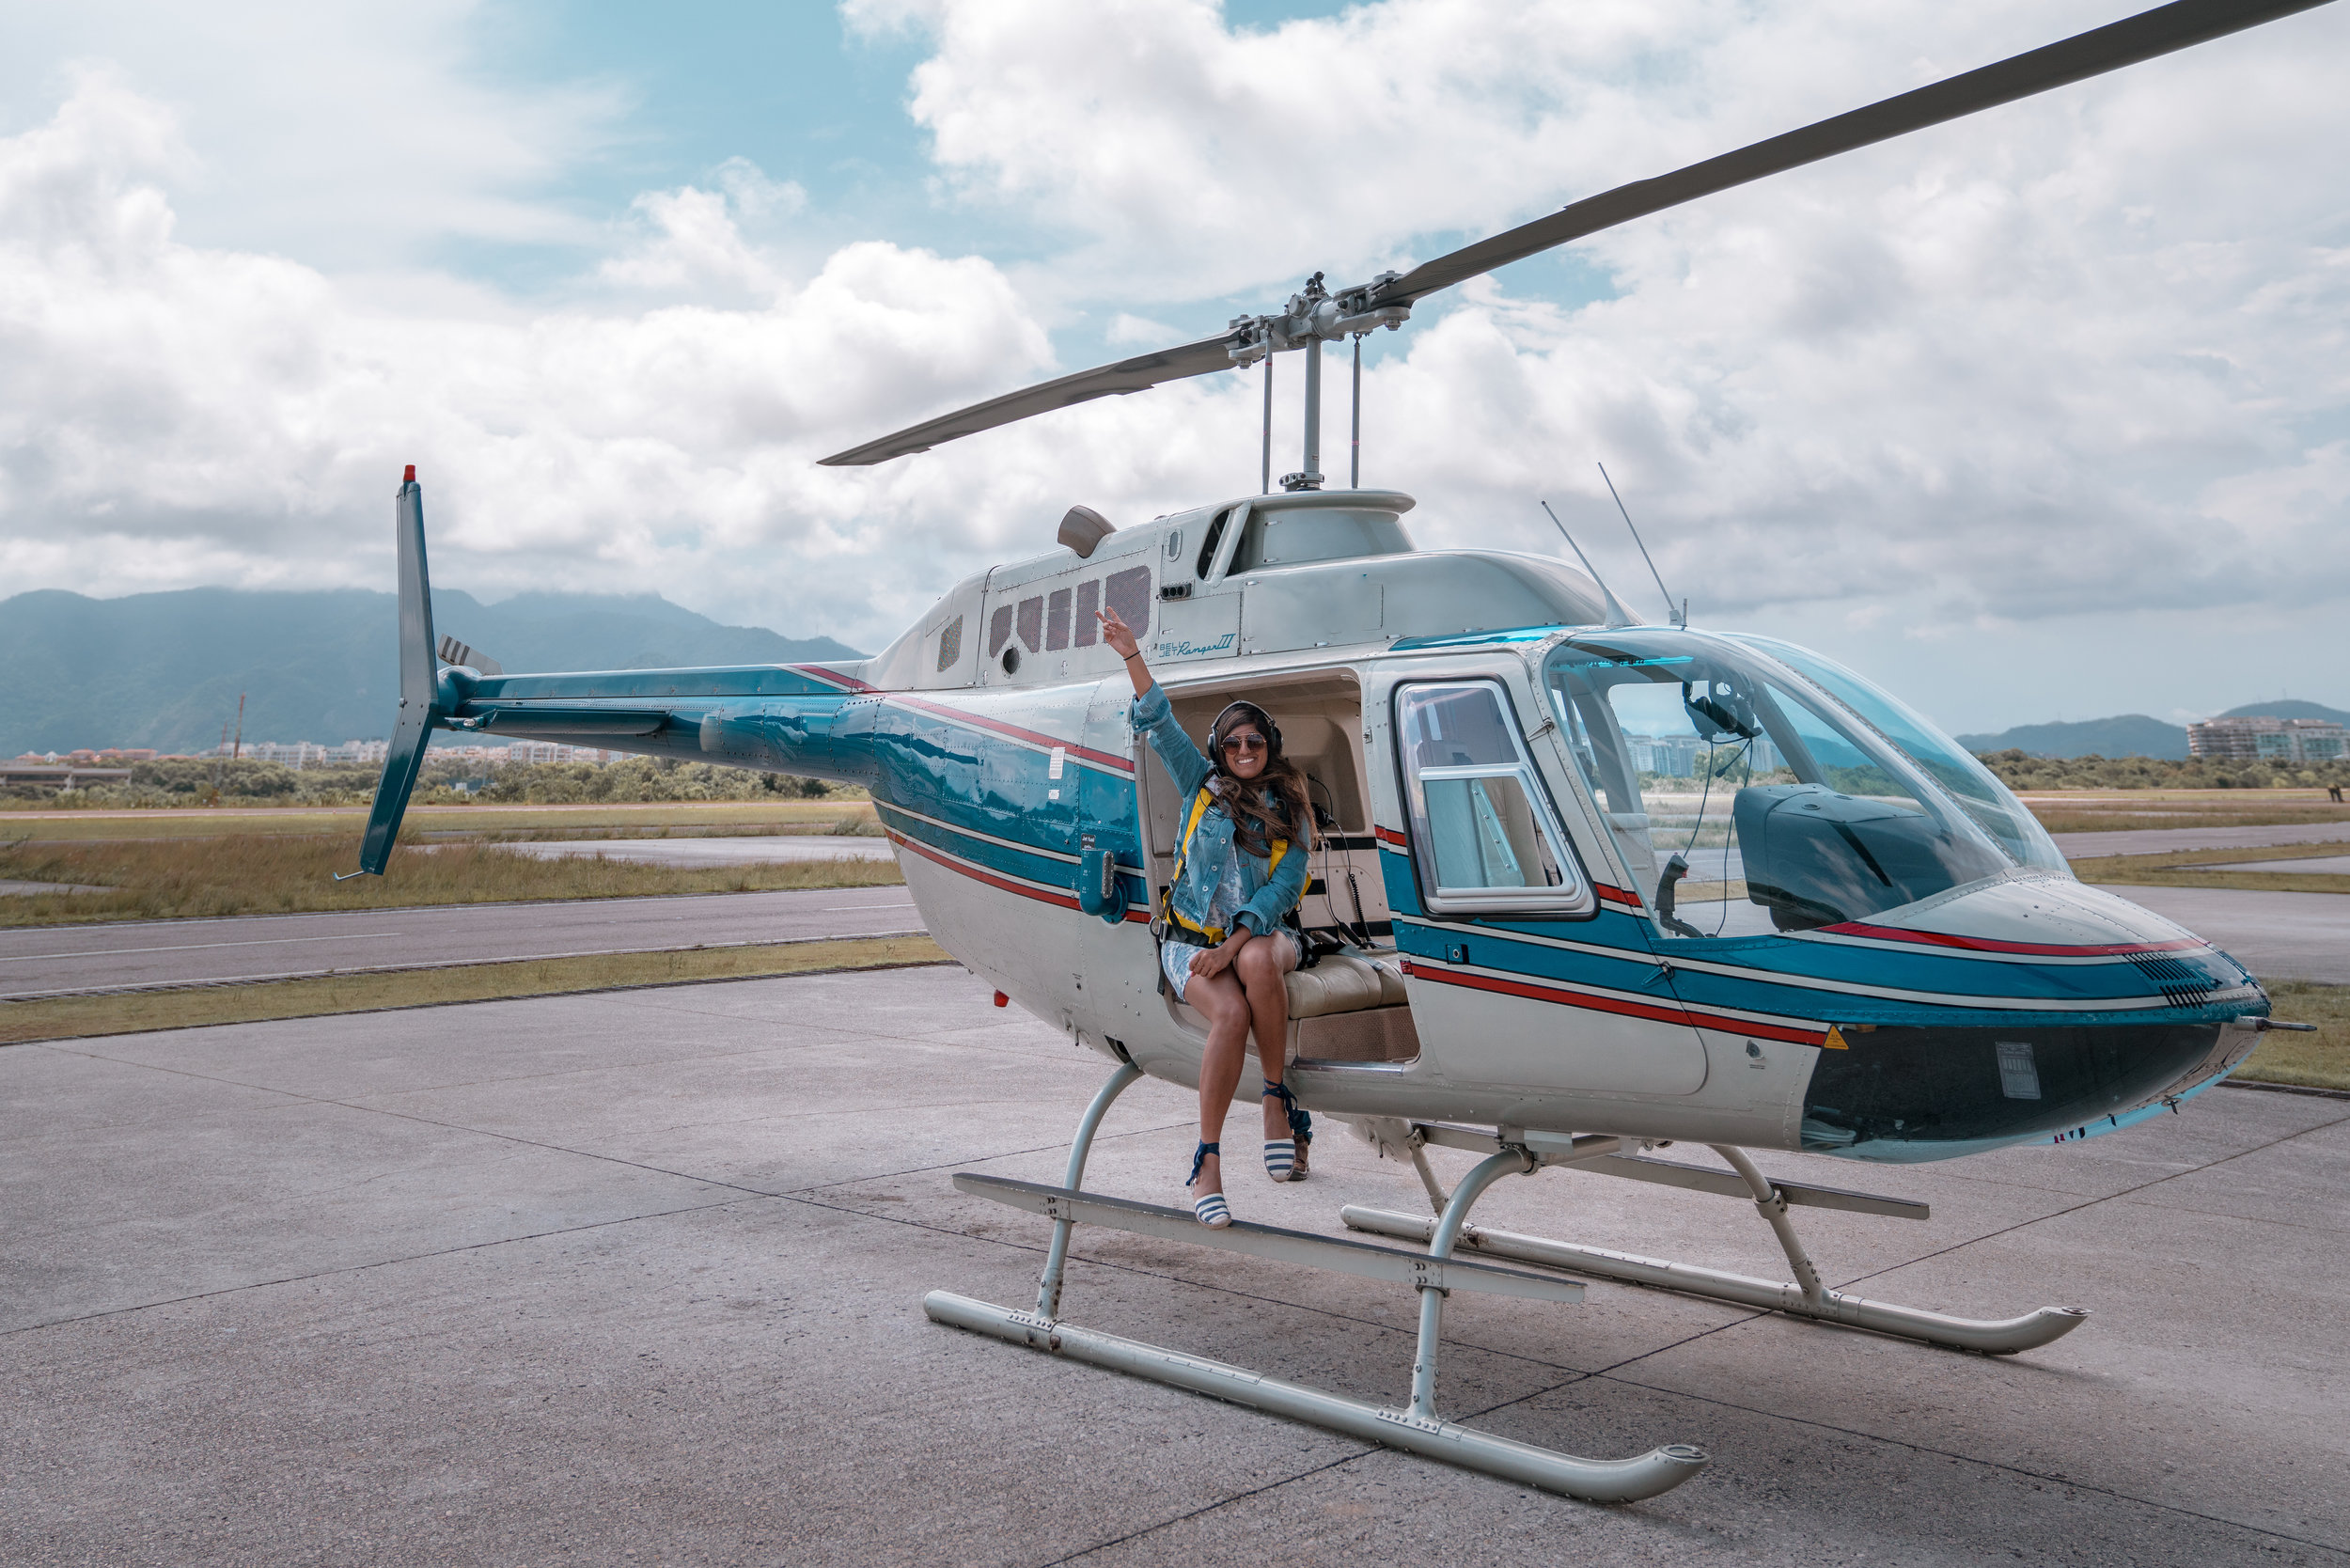 DOORS-OFF HELICOPTER PHOTO EXPERIENCE IN RIO DE JANEIRO, BRAZIL WITH VERTICAL RIO